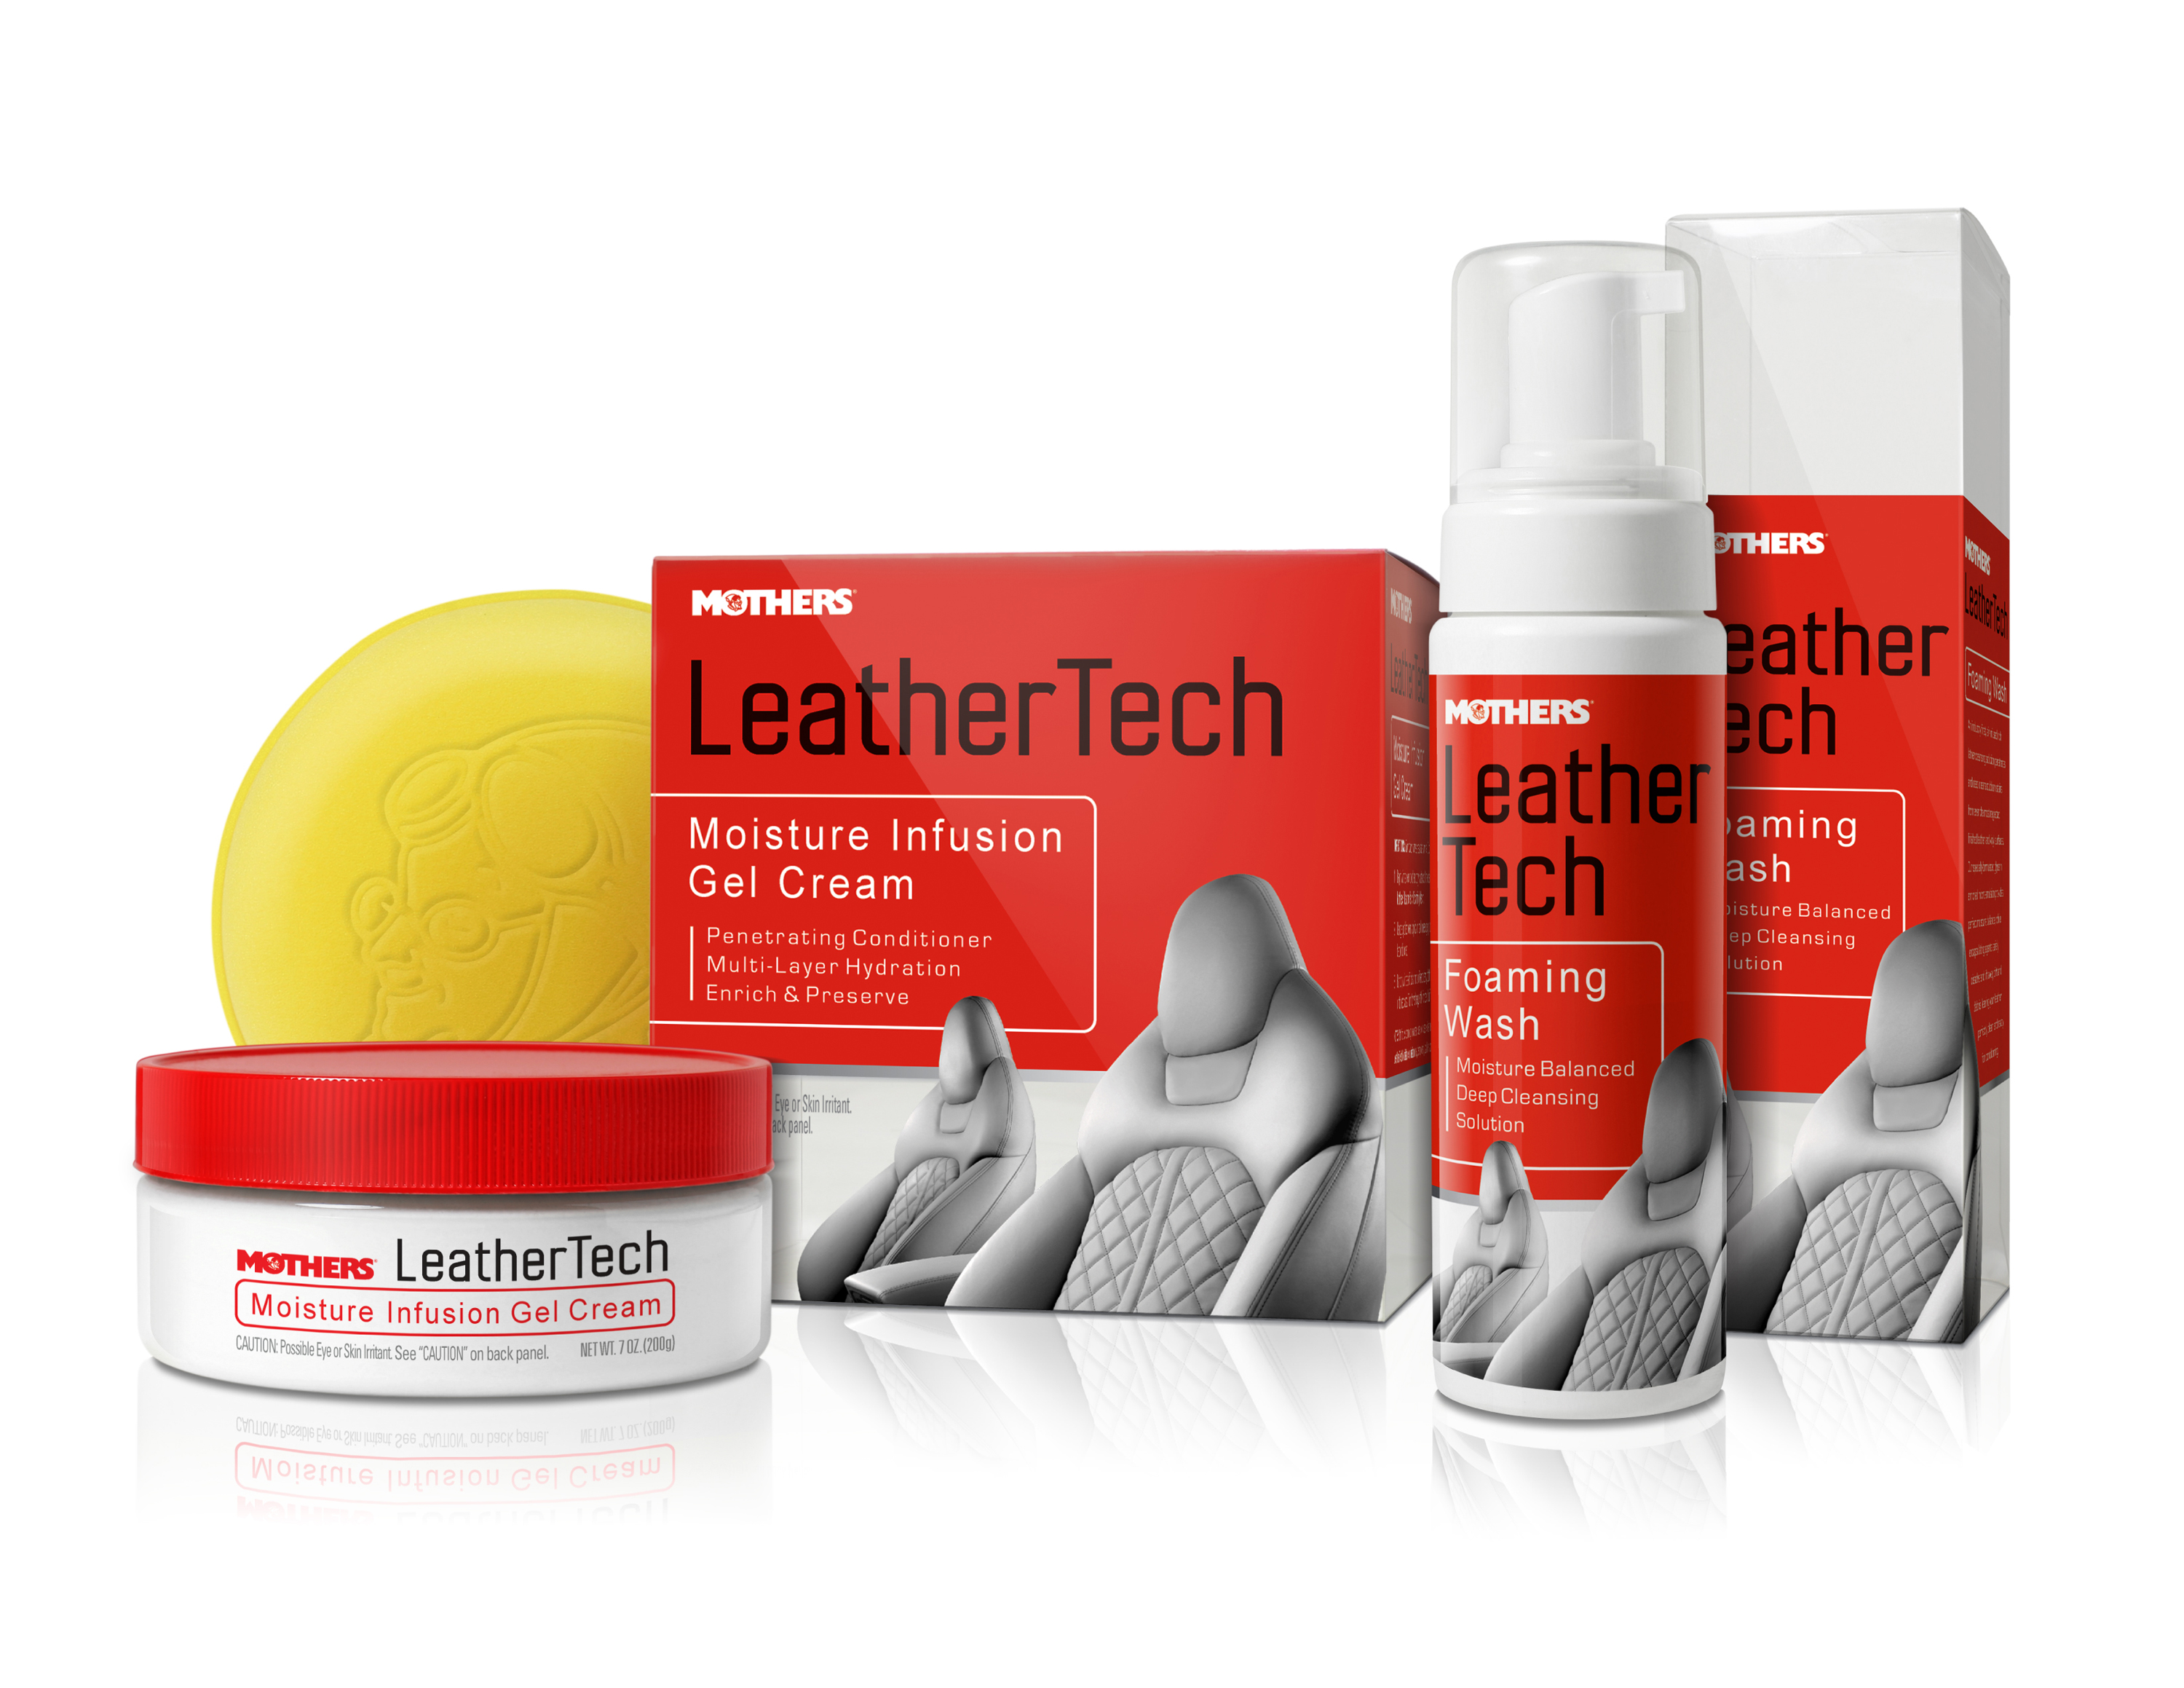 McLean_Mothers_LeatherTech_Gel Cream